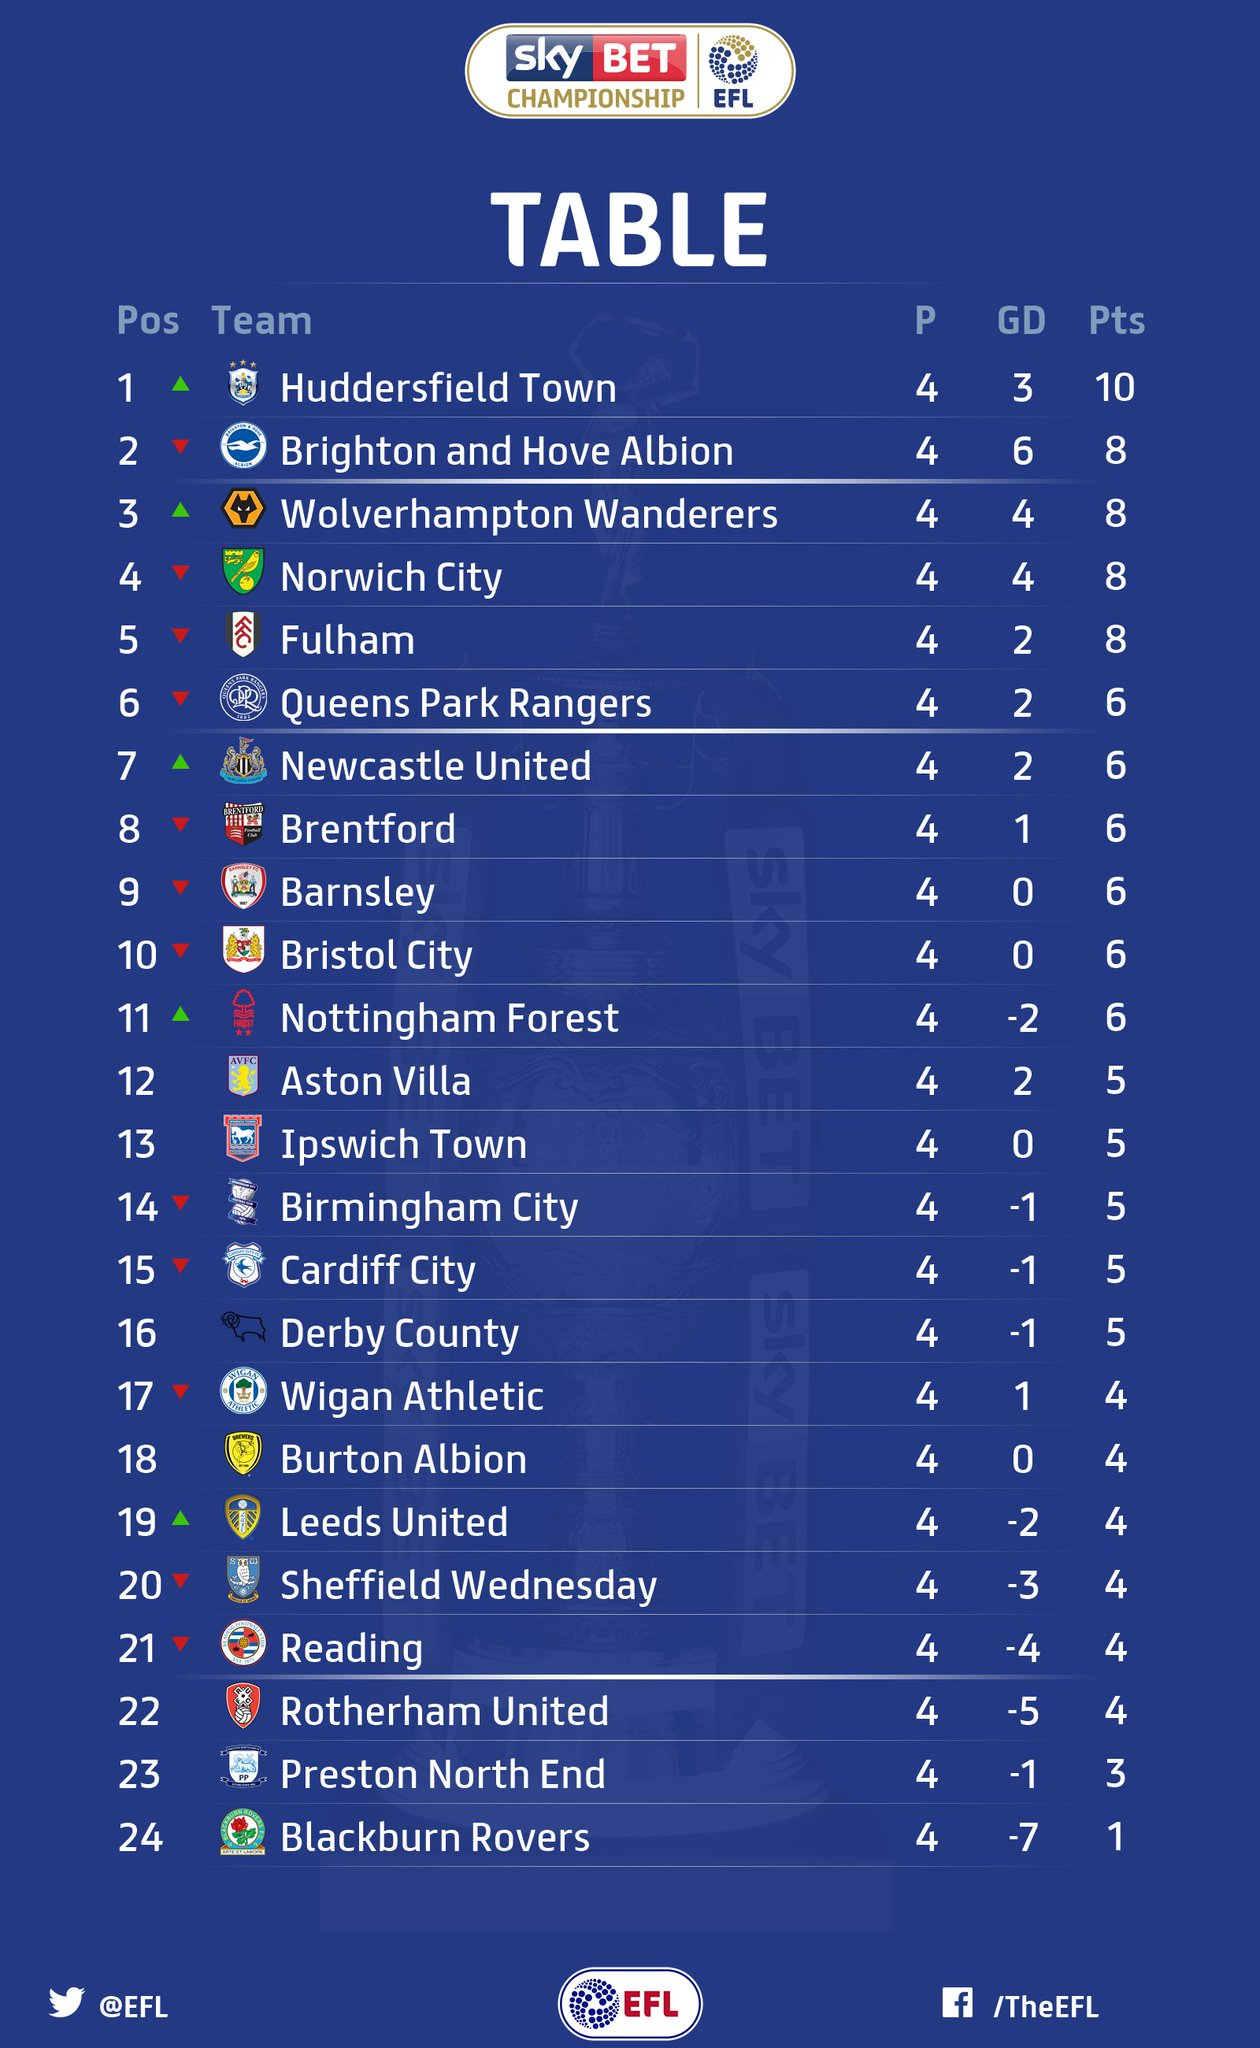 Championship results and table